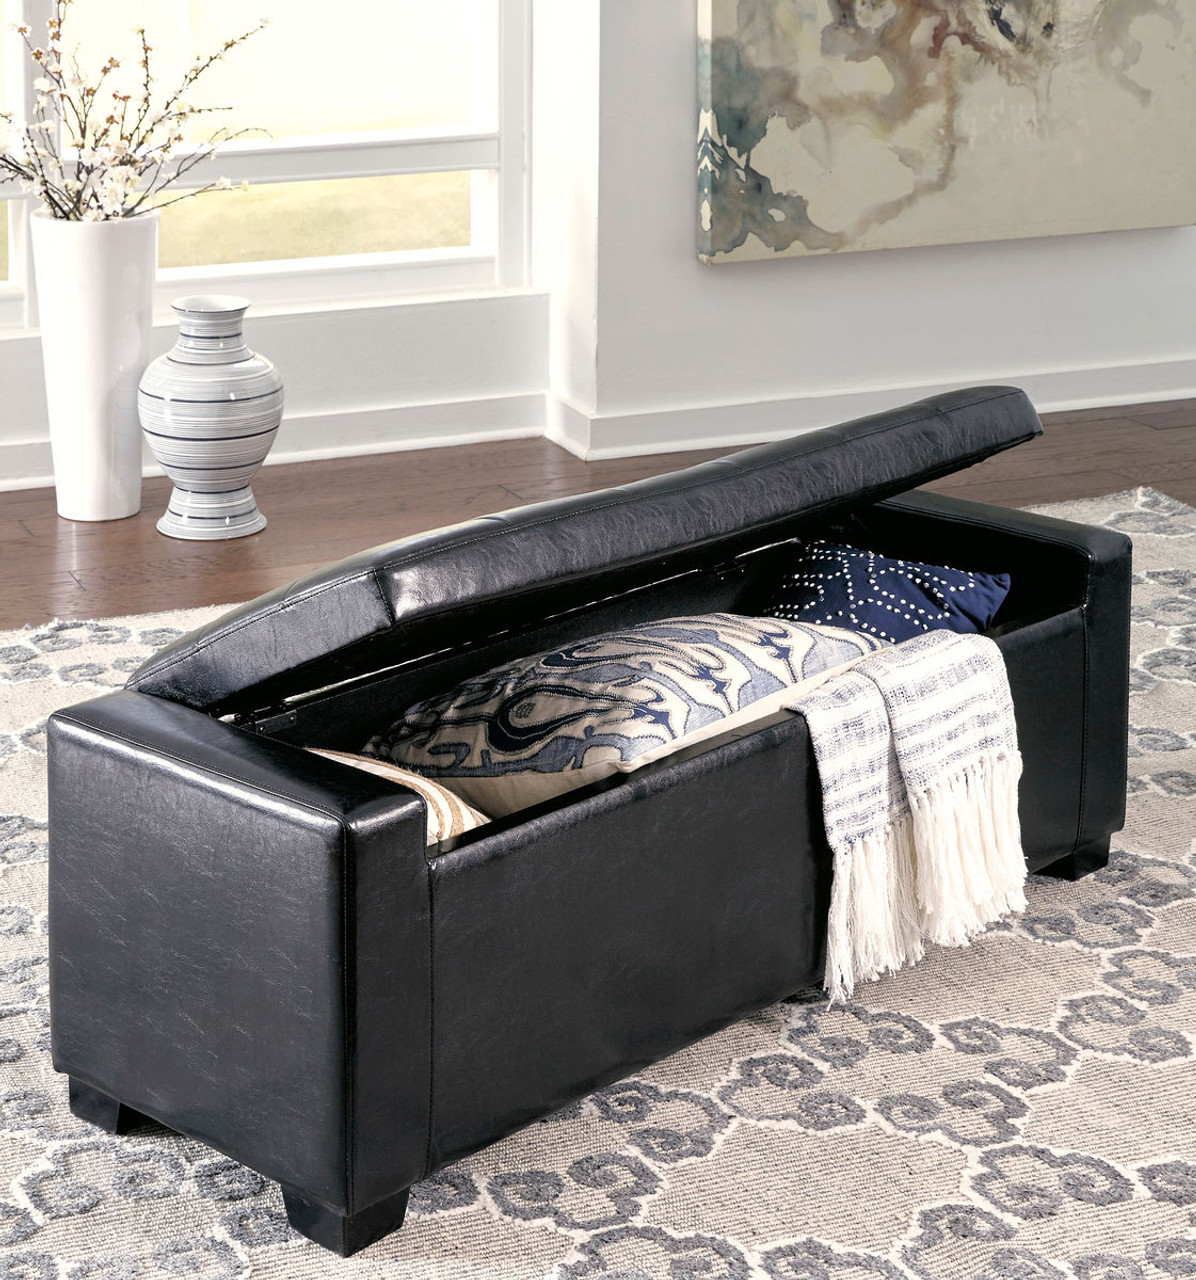 The Benches Black Upholstered Storage Bench Available At Furniture Connection Serving Clarksville Tennessee And Ft Campbell Kentucky